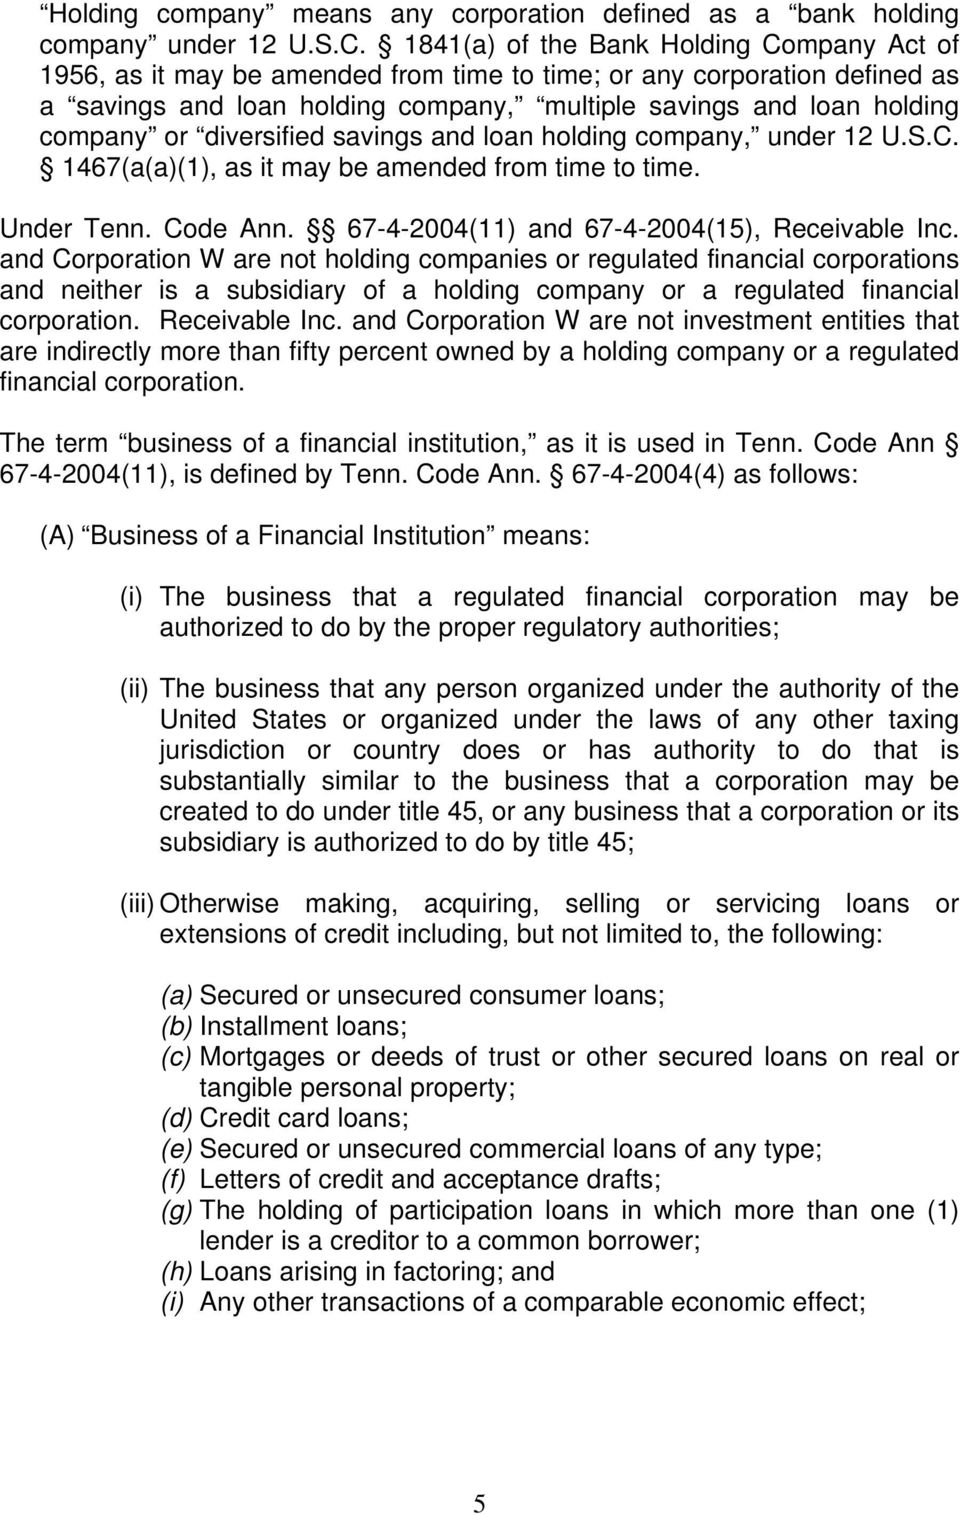 diversified savings and loan holding company, under 12 U.S.C. 1467(a(a)(1), as it may be amended from time to time. Under Tenn. Code Ann. 67-4-2004(11) and 67-4-2004(15), Receivable Inc.